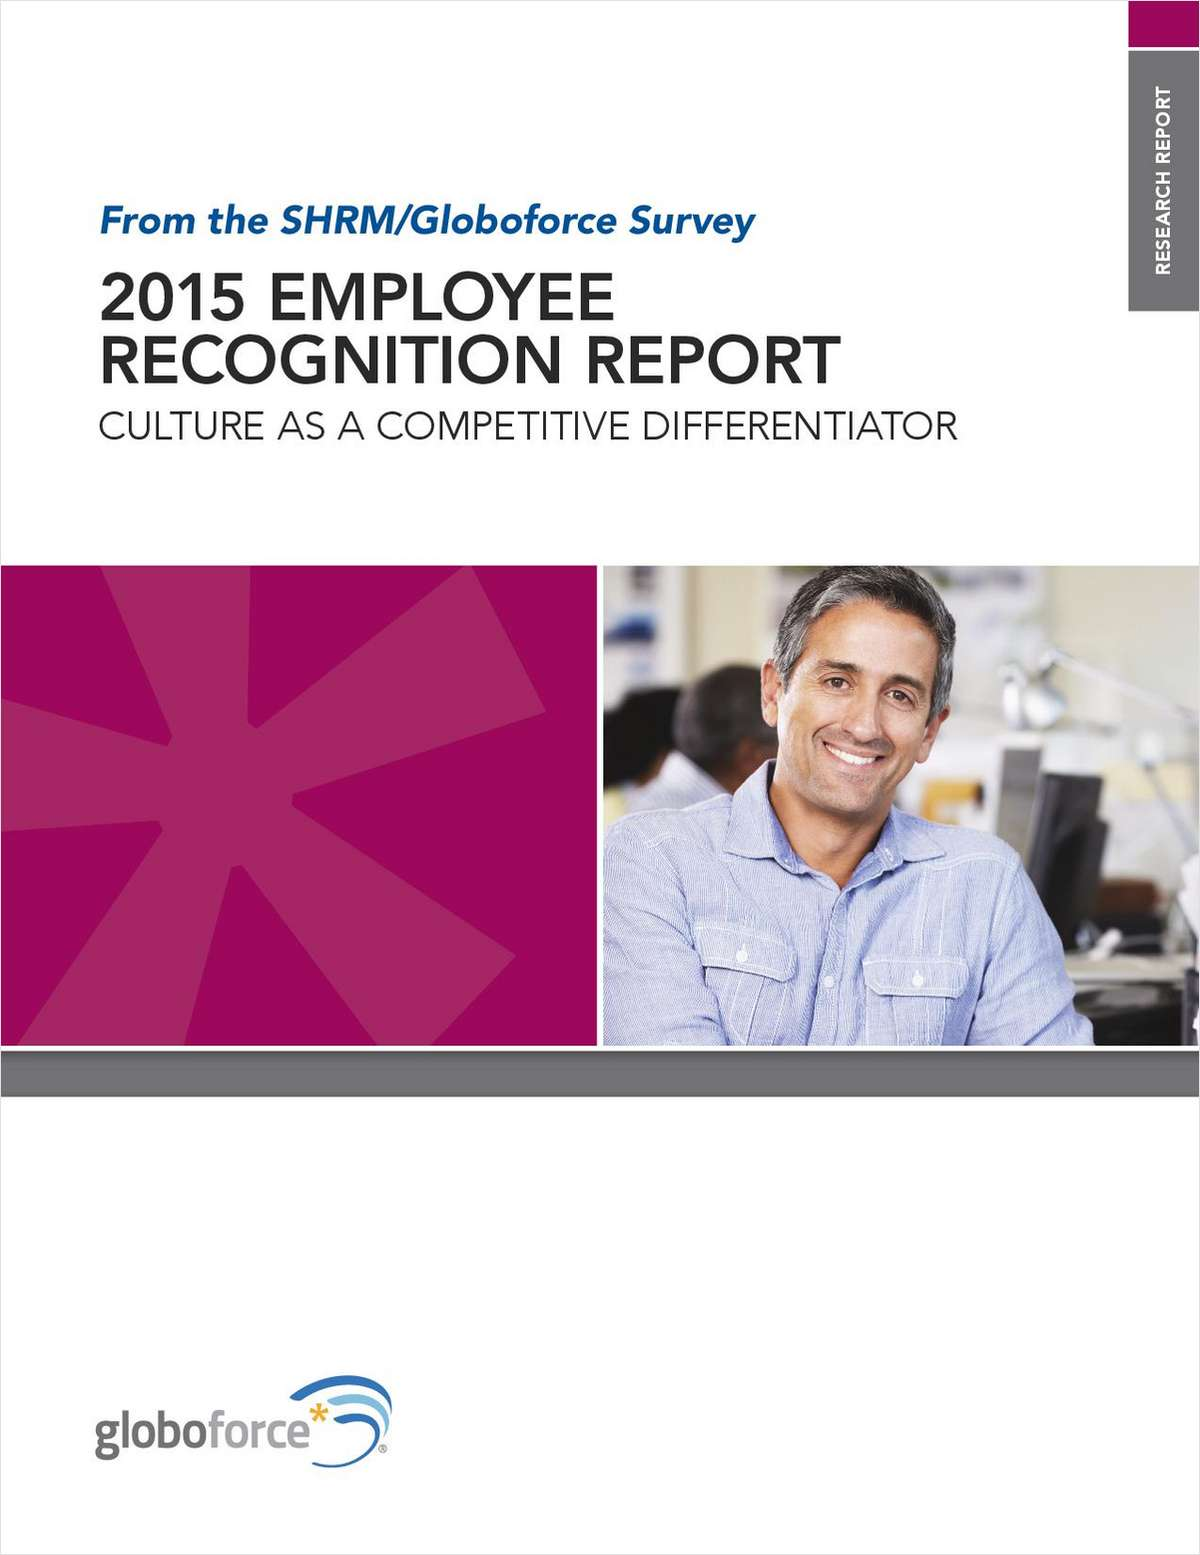 2015 Employee Recognition Report: Culture as a Competitive Differentiator